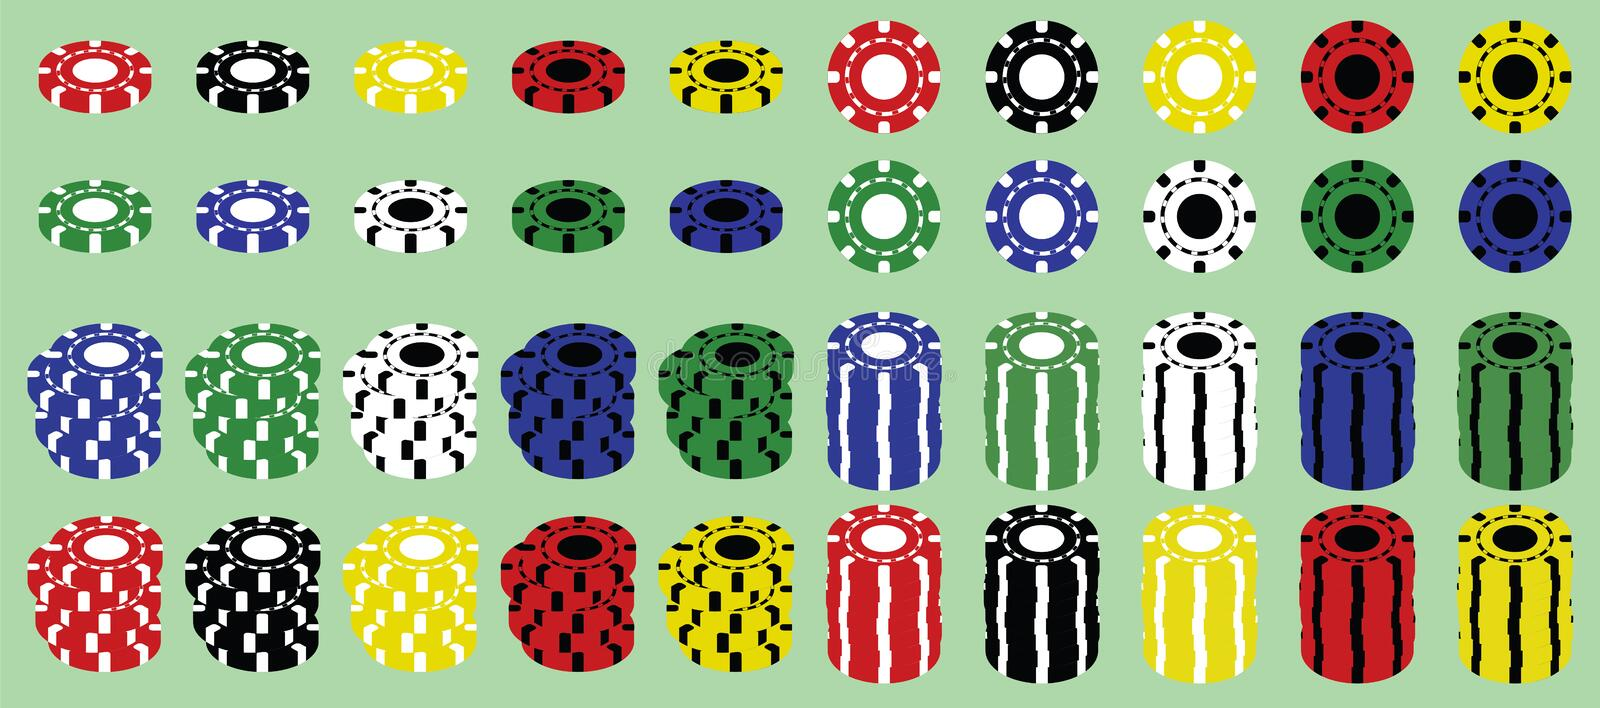 Set of casino chips. Set of colored casino poker chips royalty free illustration